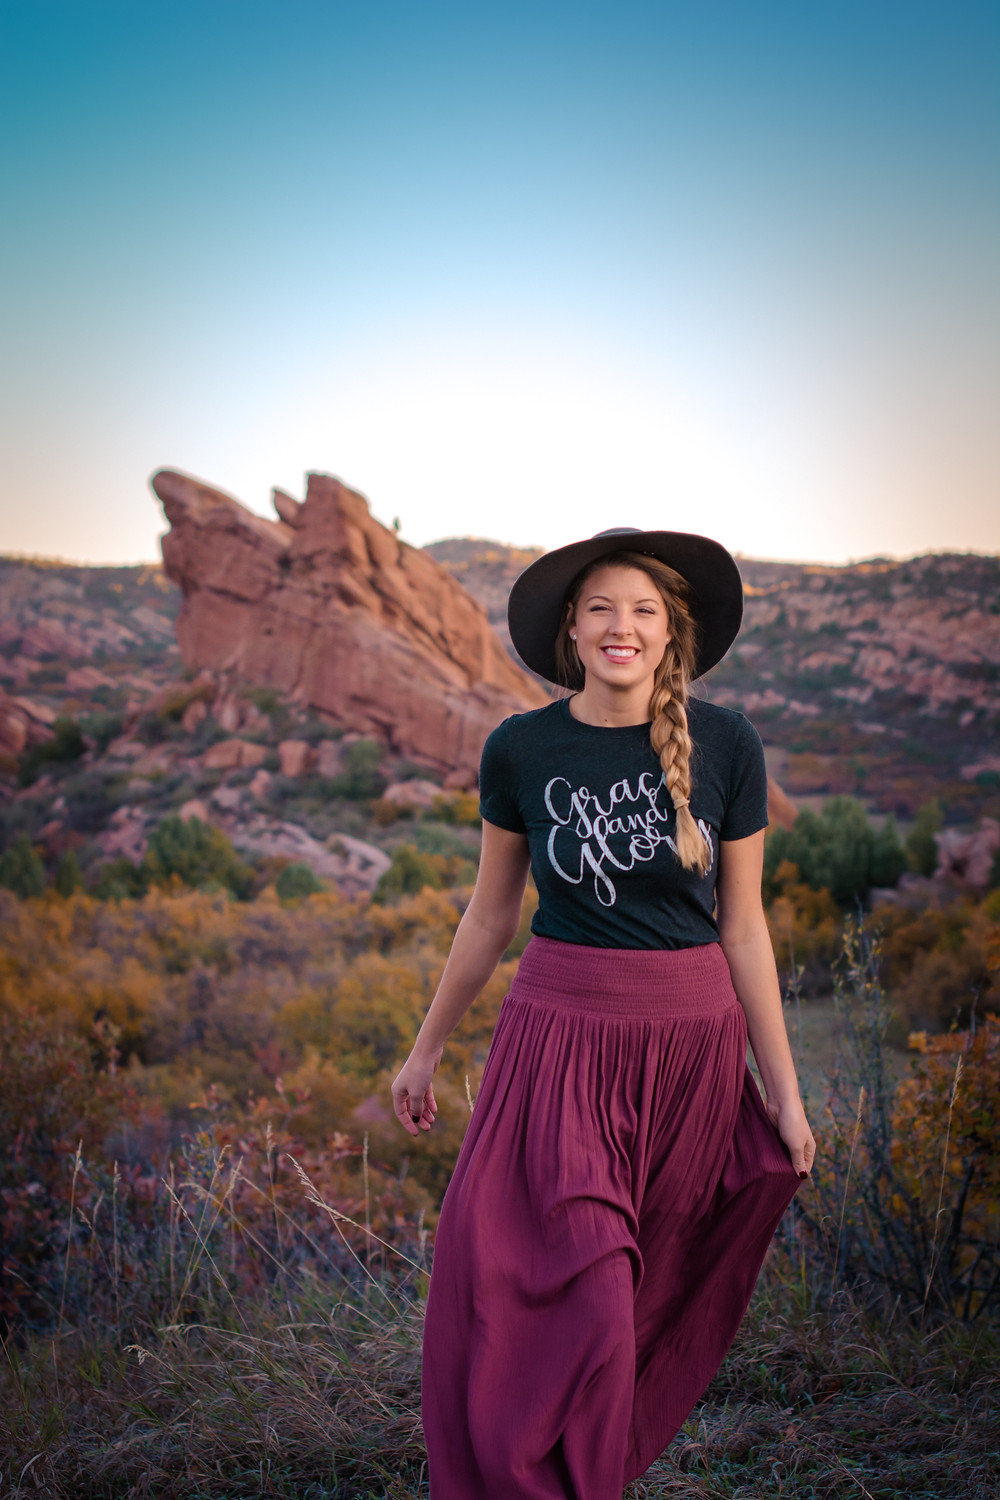 Holly Canon Travel and Lifestyle Blog Pinks Denver Pink Skirt Mauve and Kingdom at Heart Tee Grace and Glory Christian Tshirt